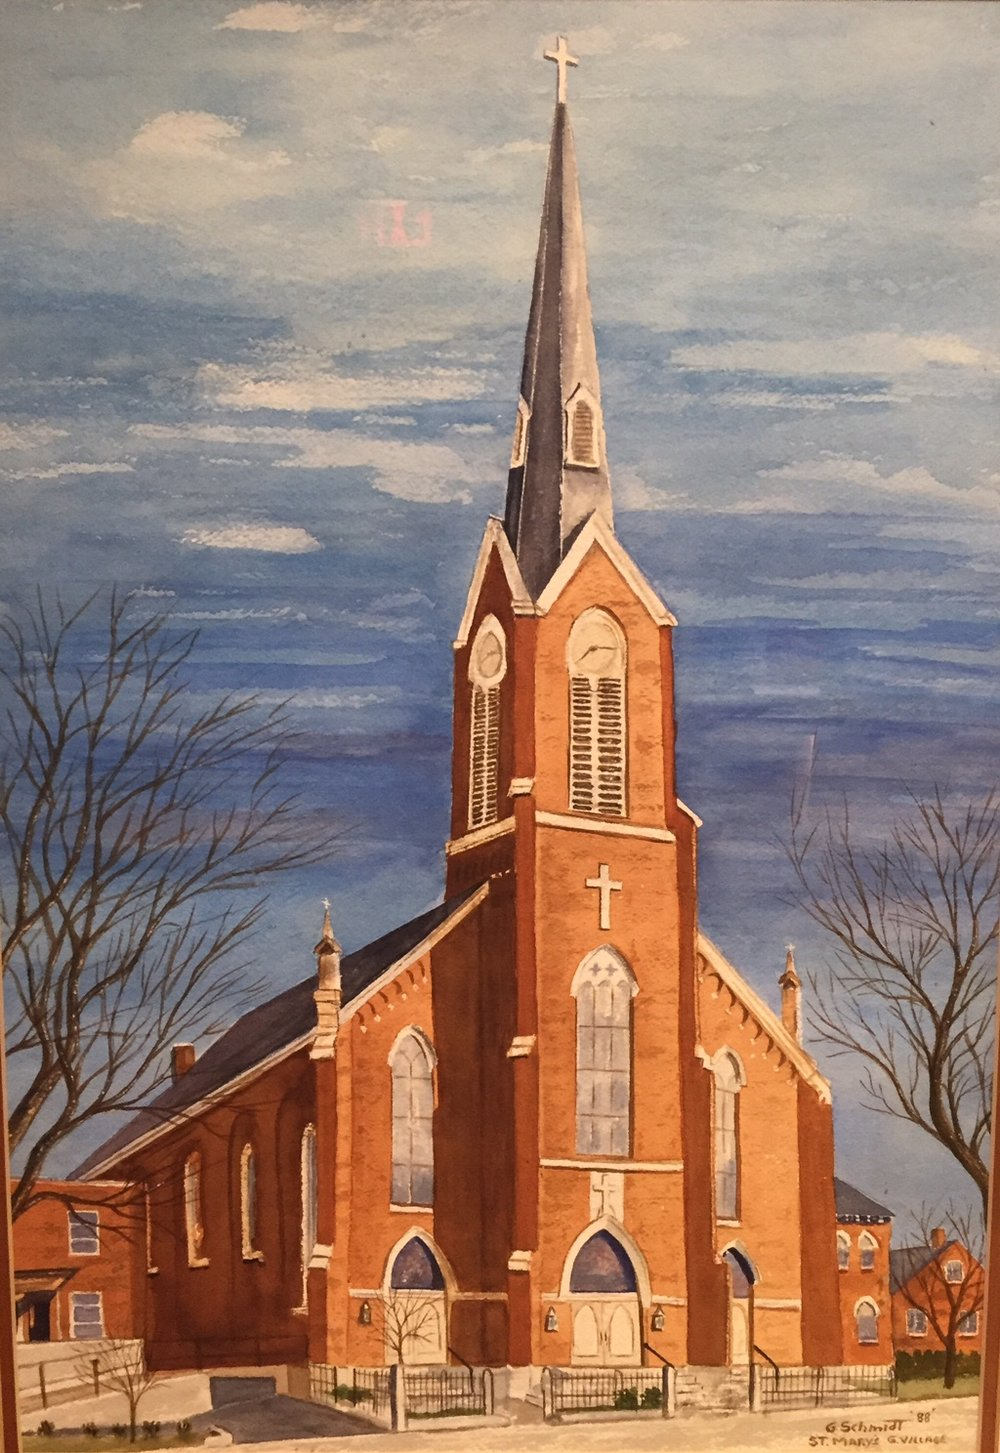 St. Mary Church Painting George Schmidt.jpg